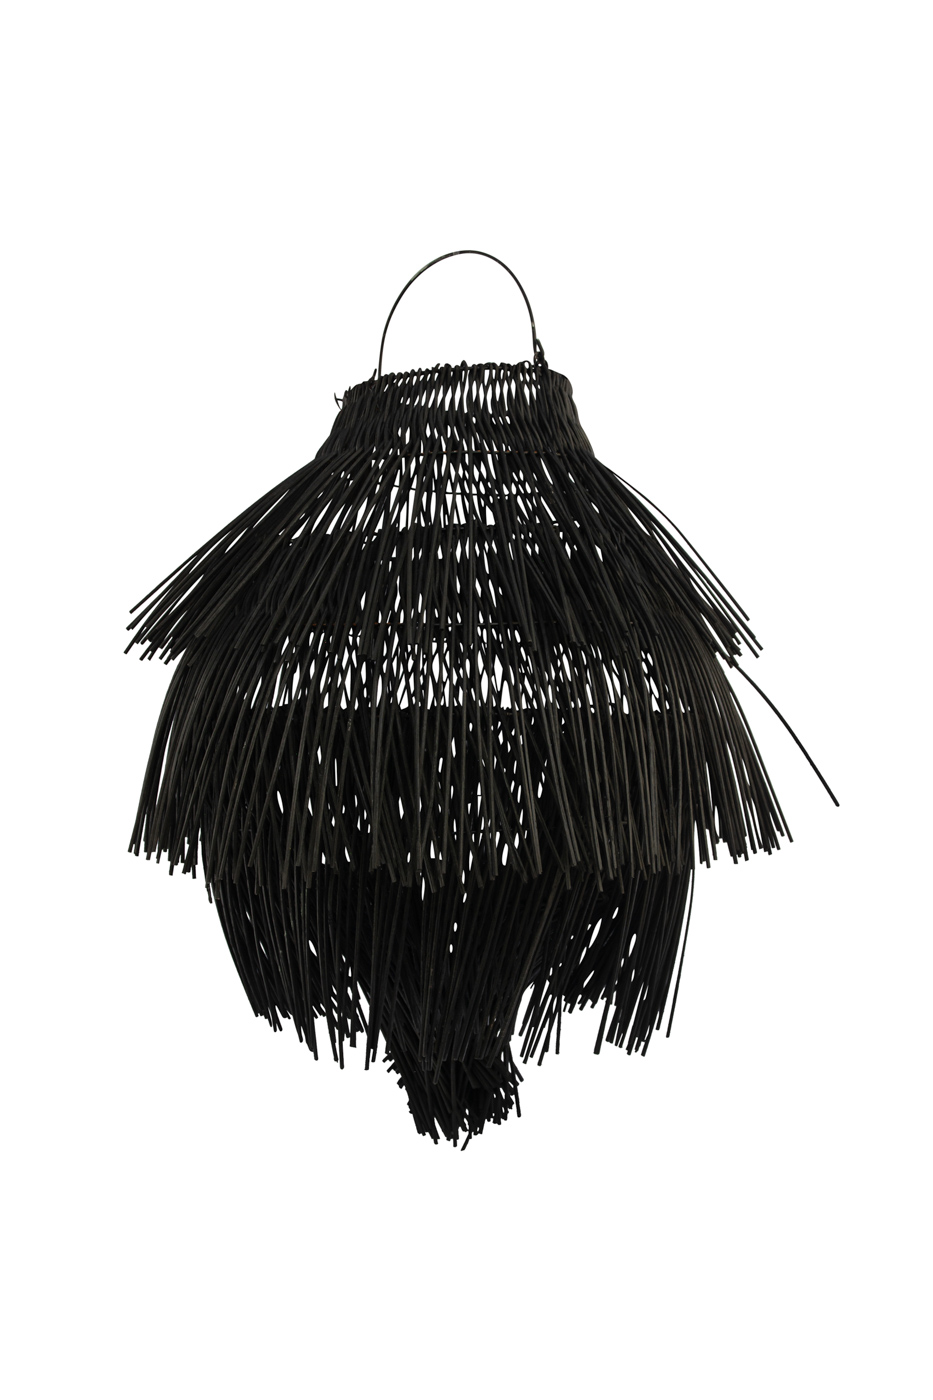 Pendant lamp in rattan with fringes, black